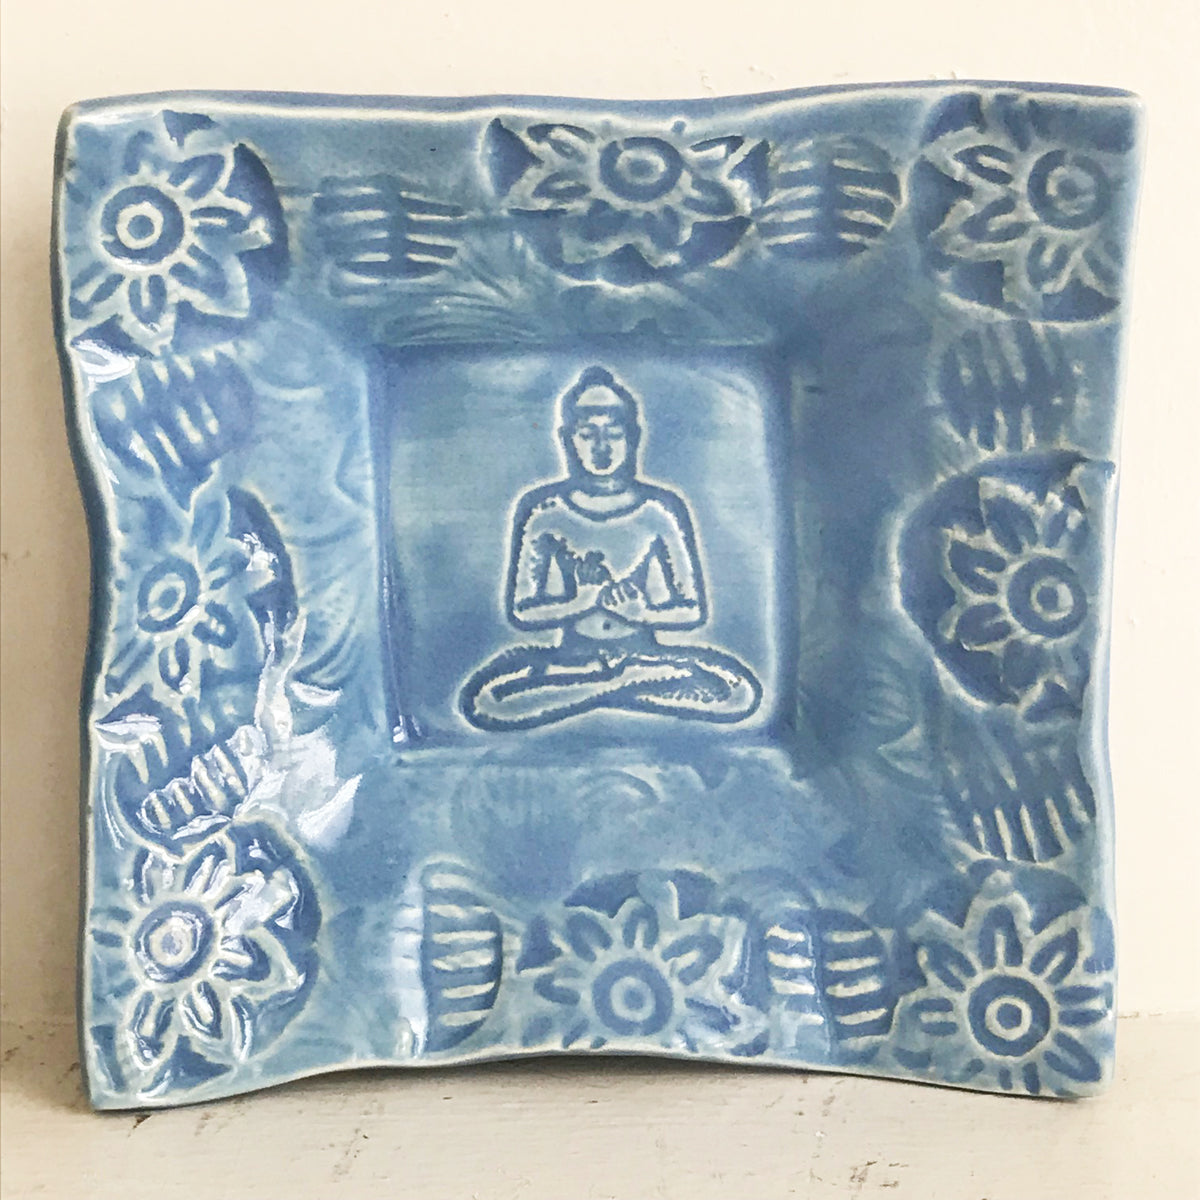 Ceramic Buddha dish glazed in blue grey.